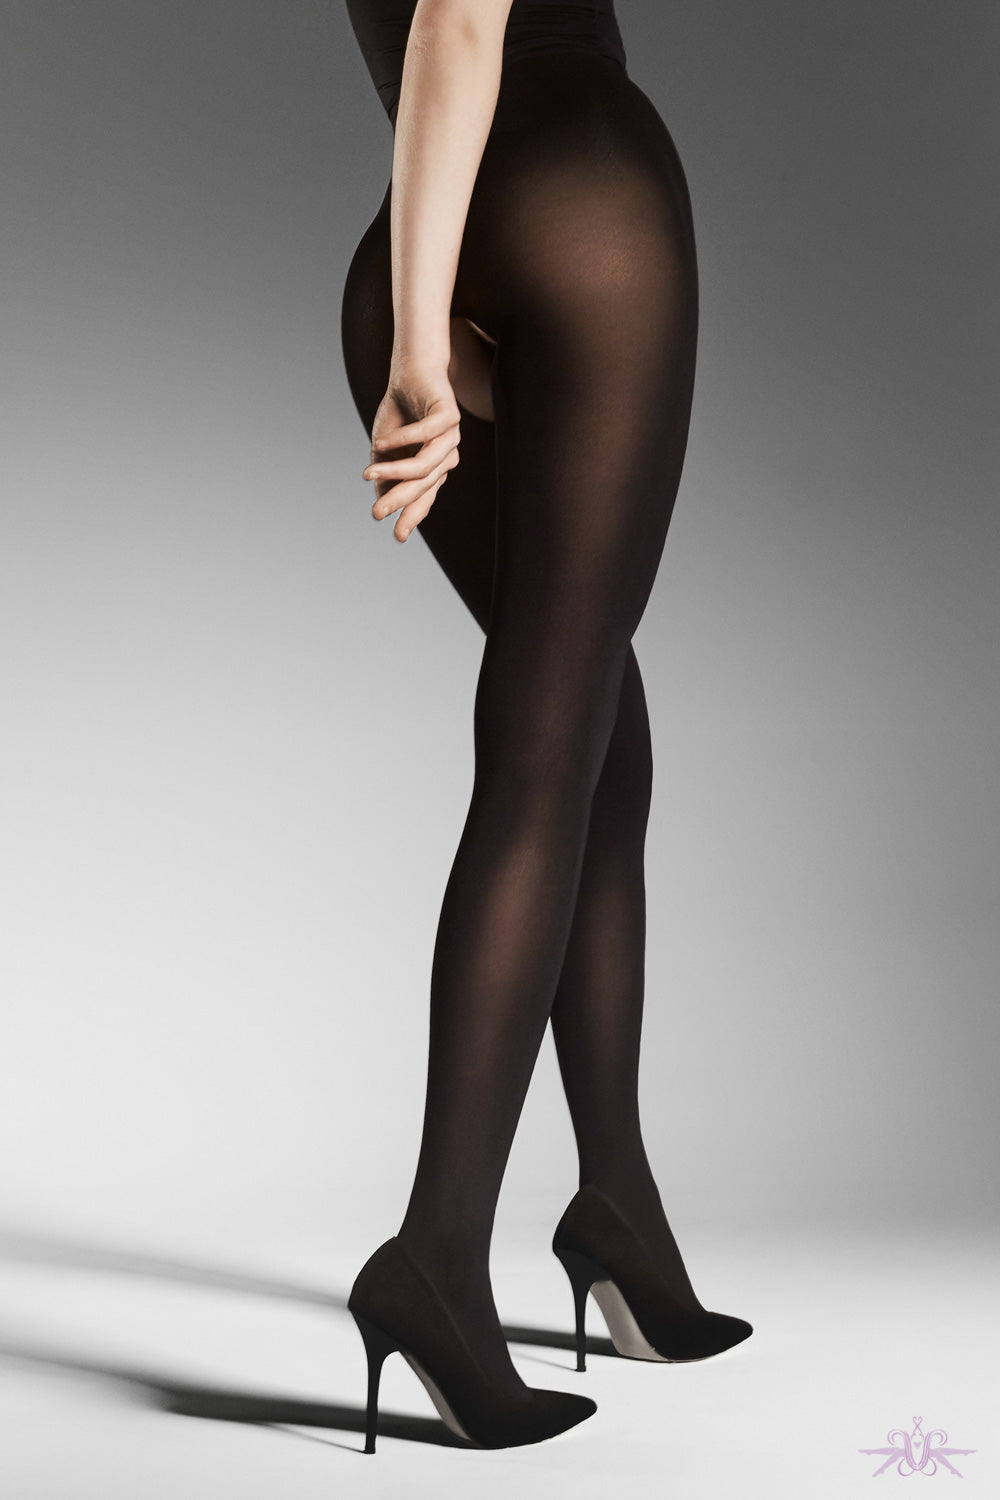 Fiore Ouvert Opaque Tight - Mayfair Stockings